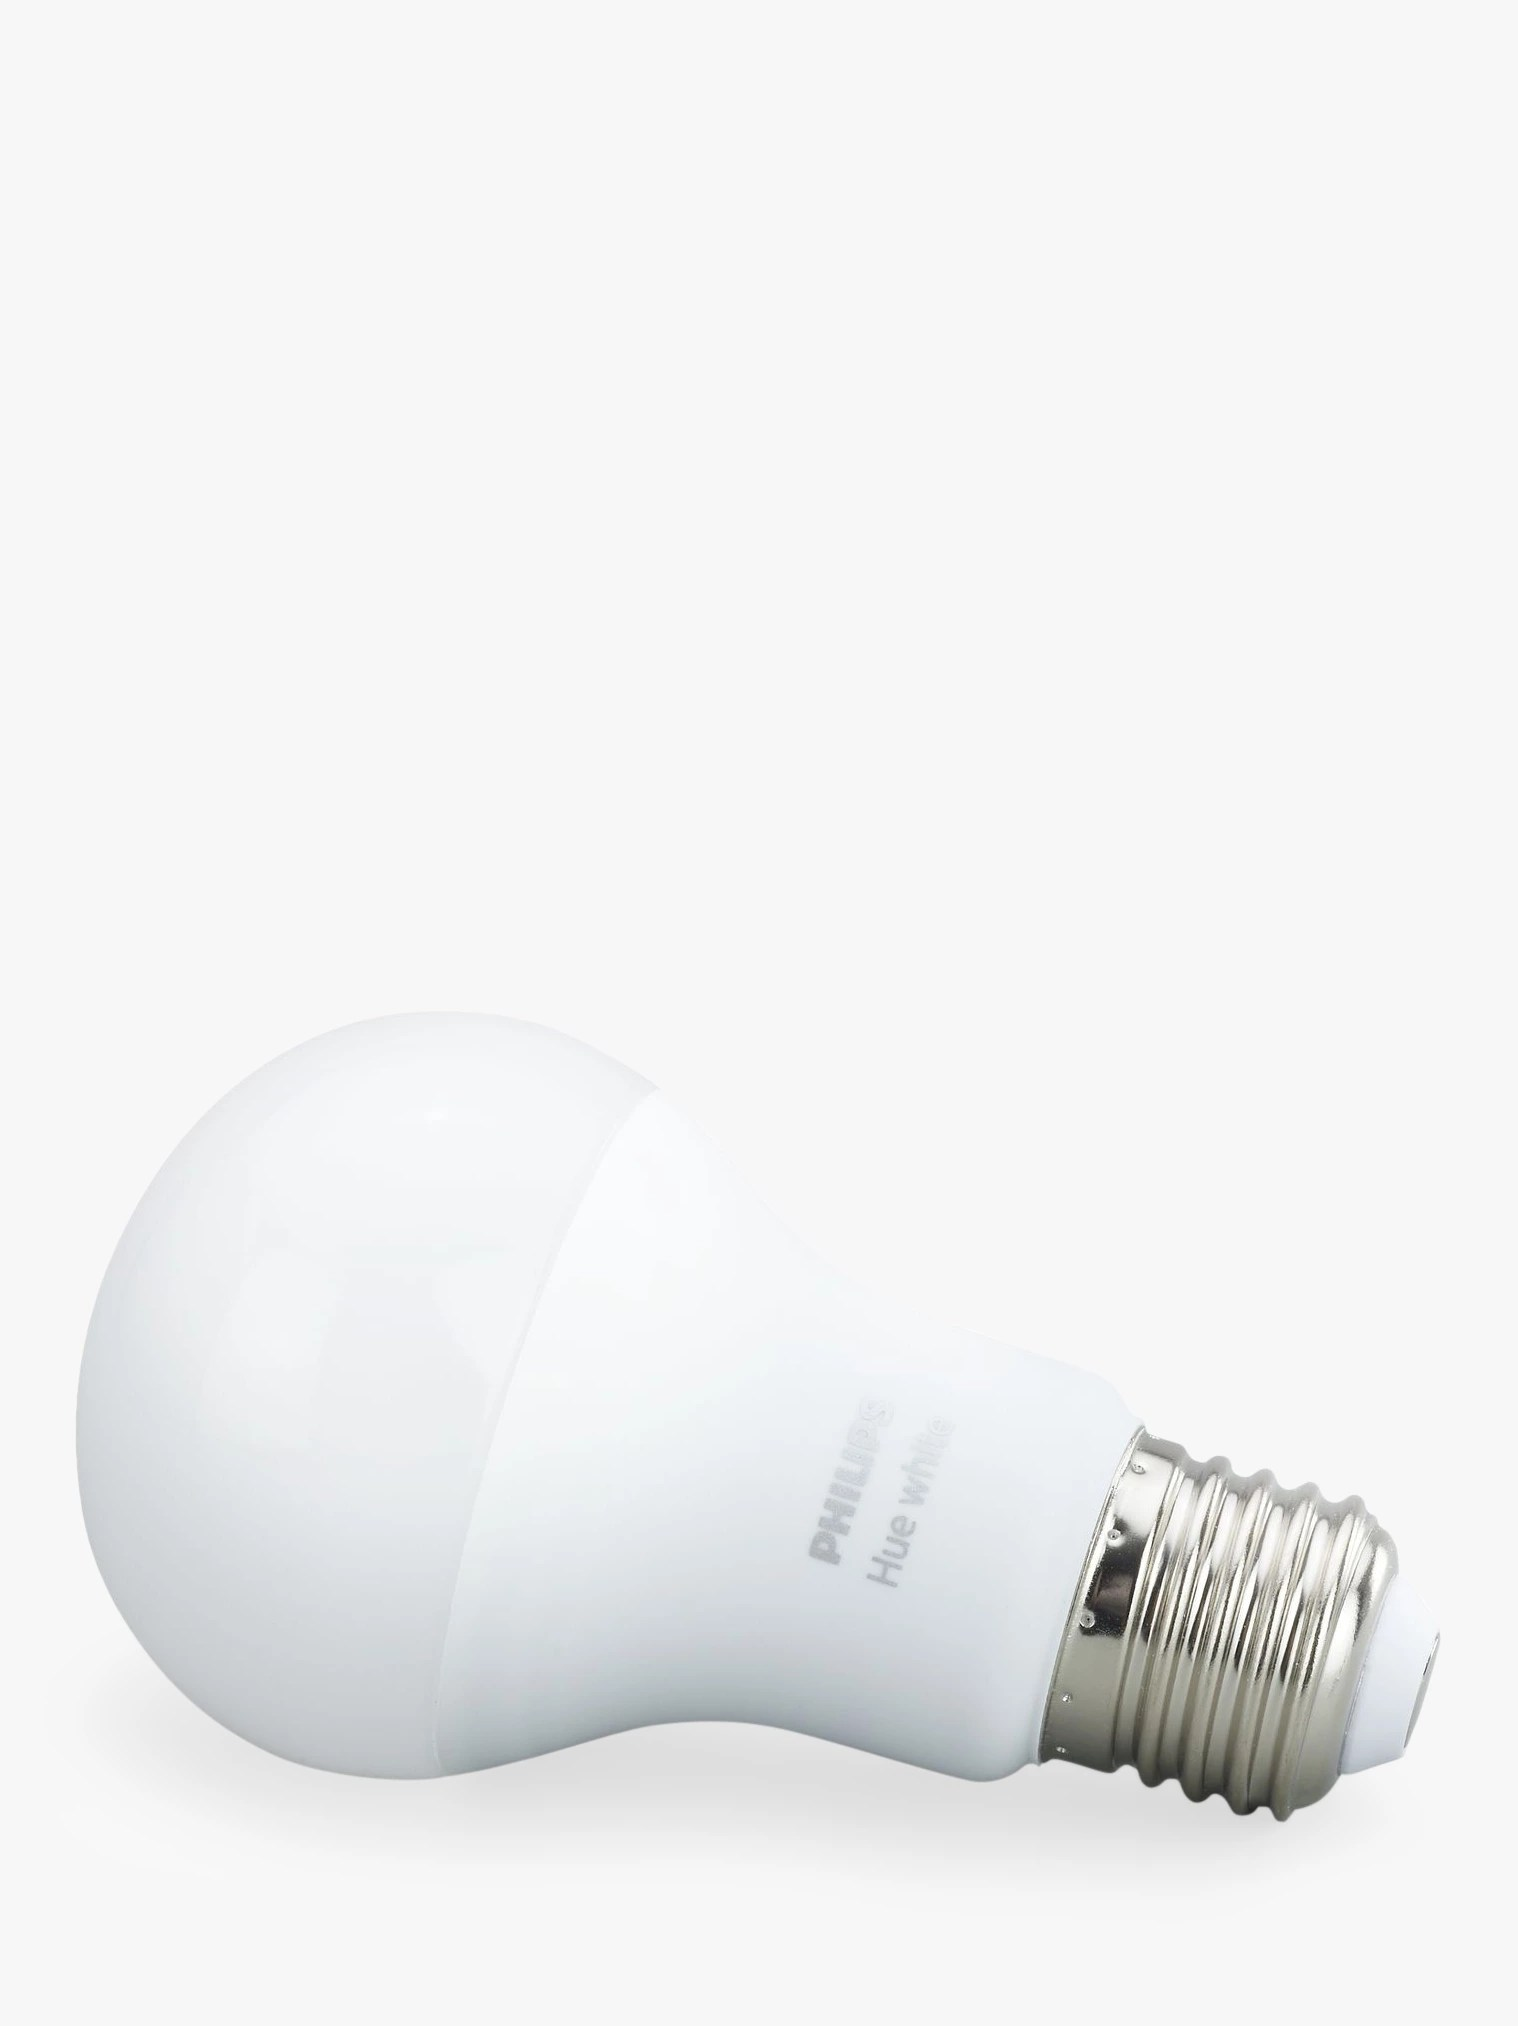 Hue Fitting Philips Hue White 9 5w A60 Smart Bulb E27 Fitting At John Lewis